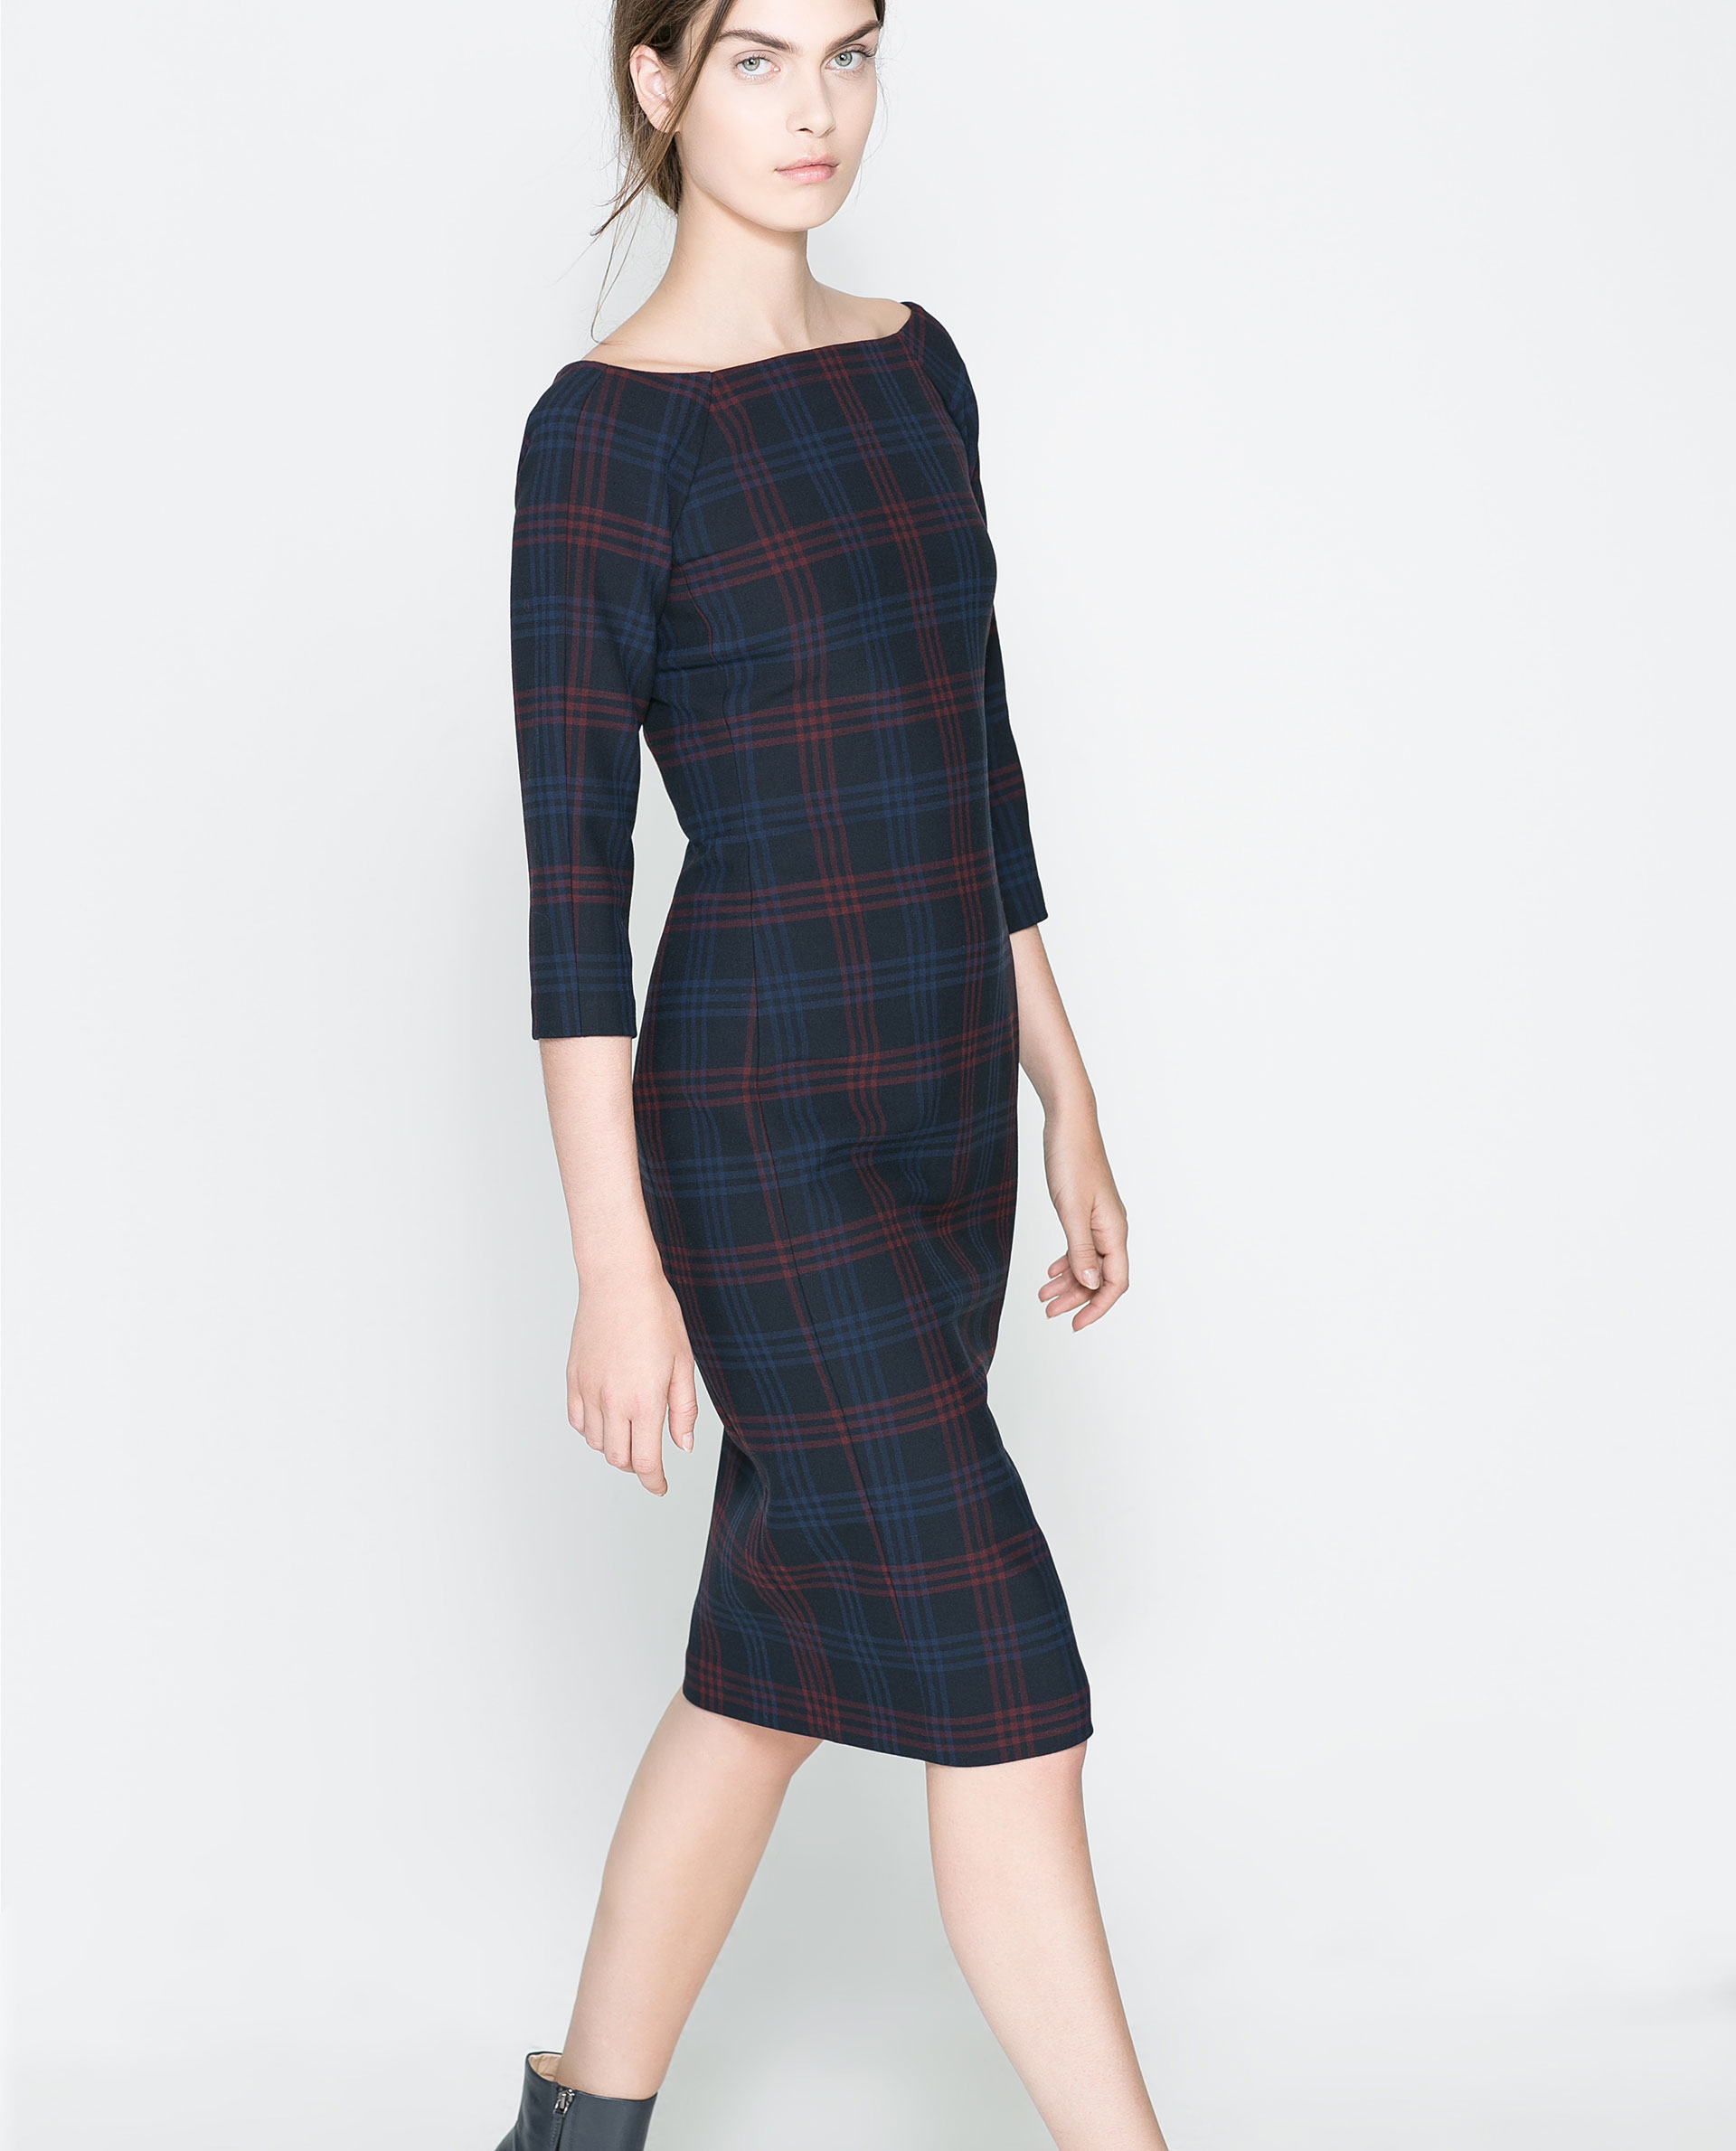 Simple Zara Clothing Uk Latest Clothes Collection For Ladies  Fashion Fist